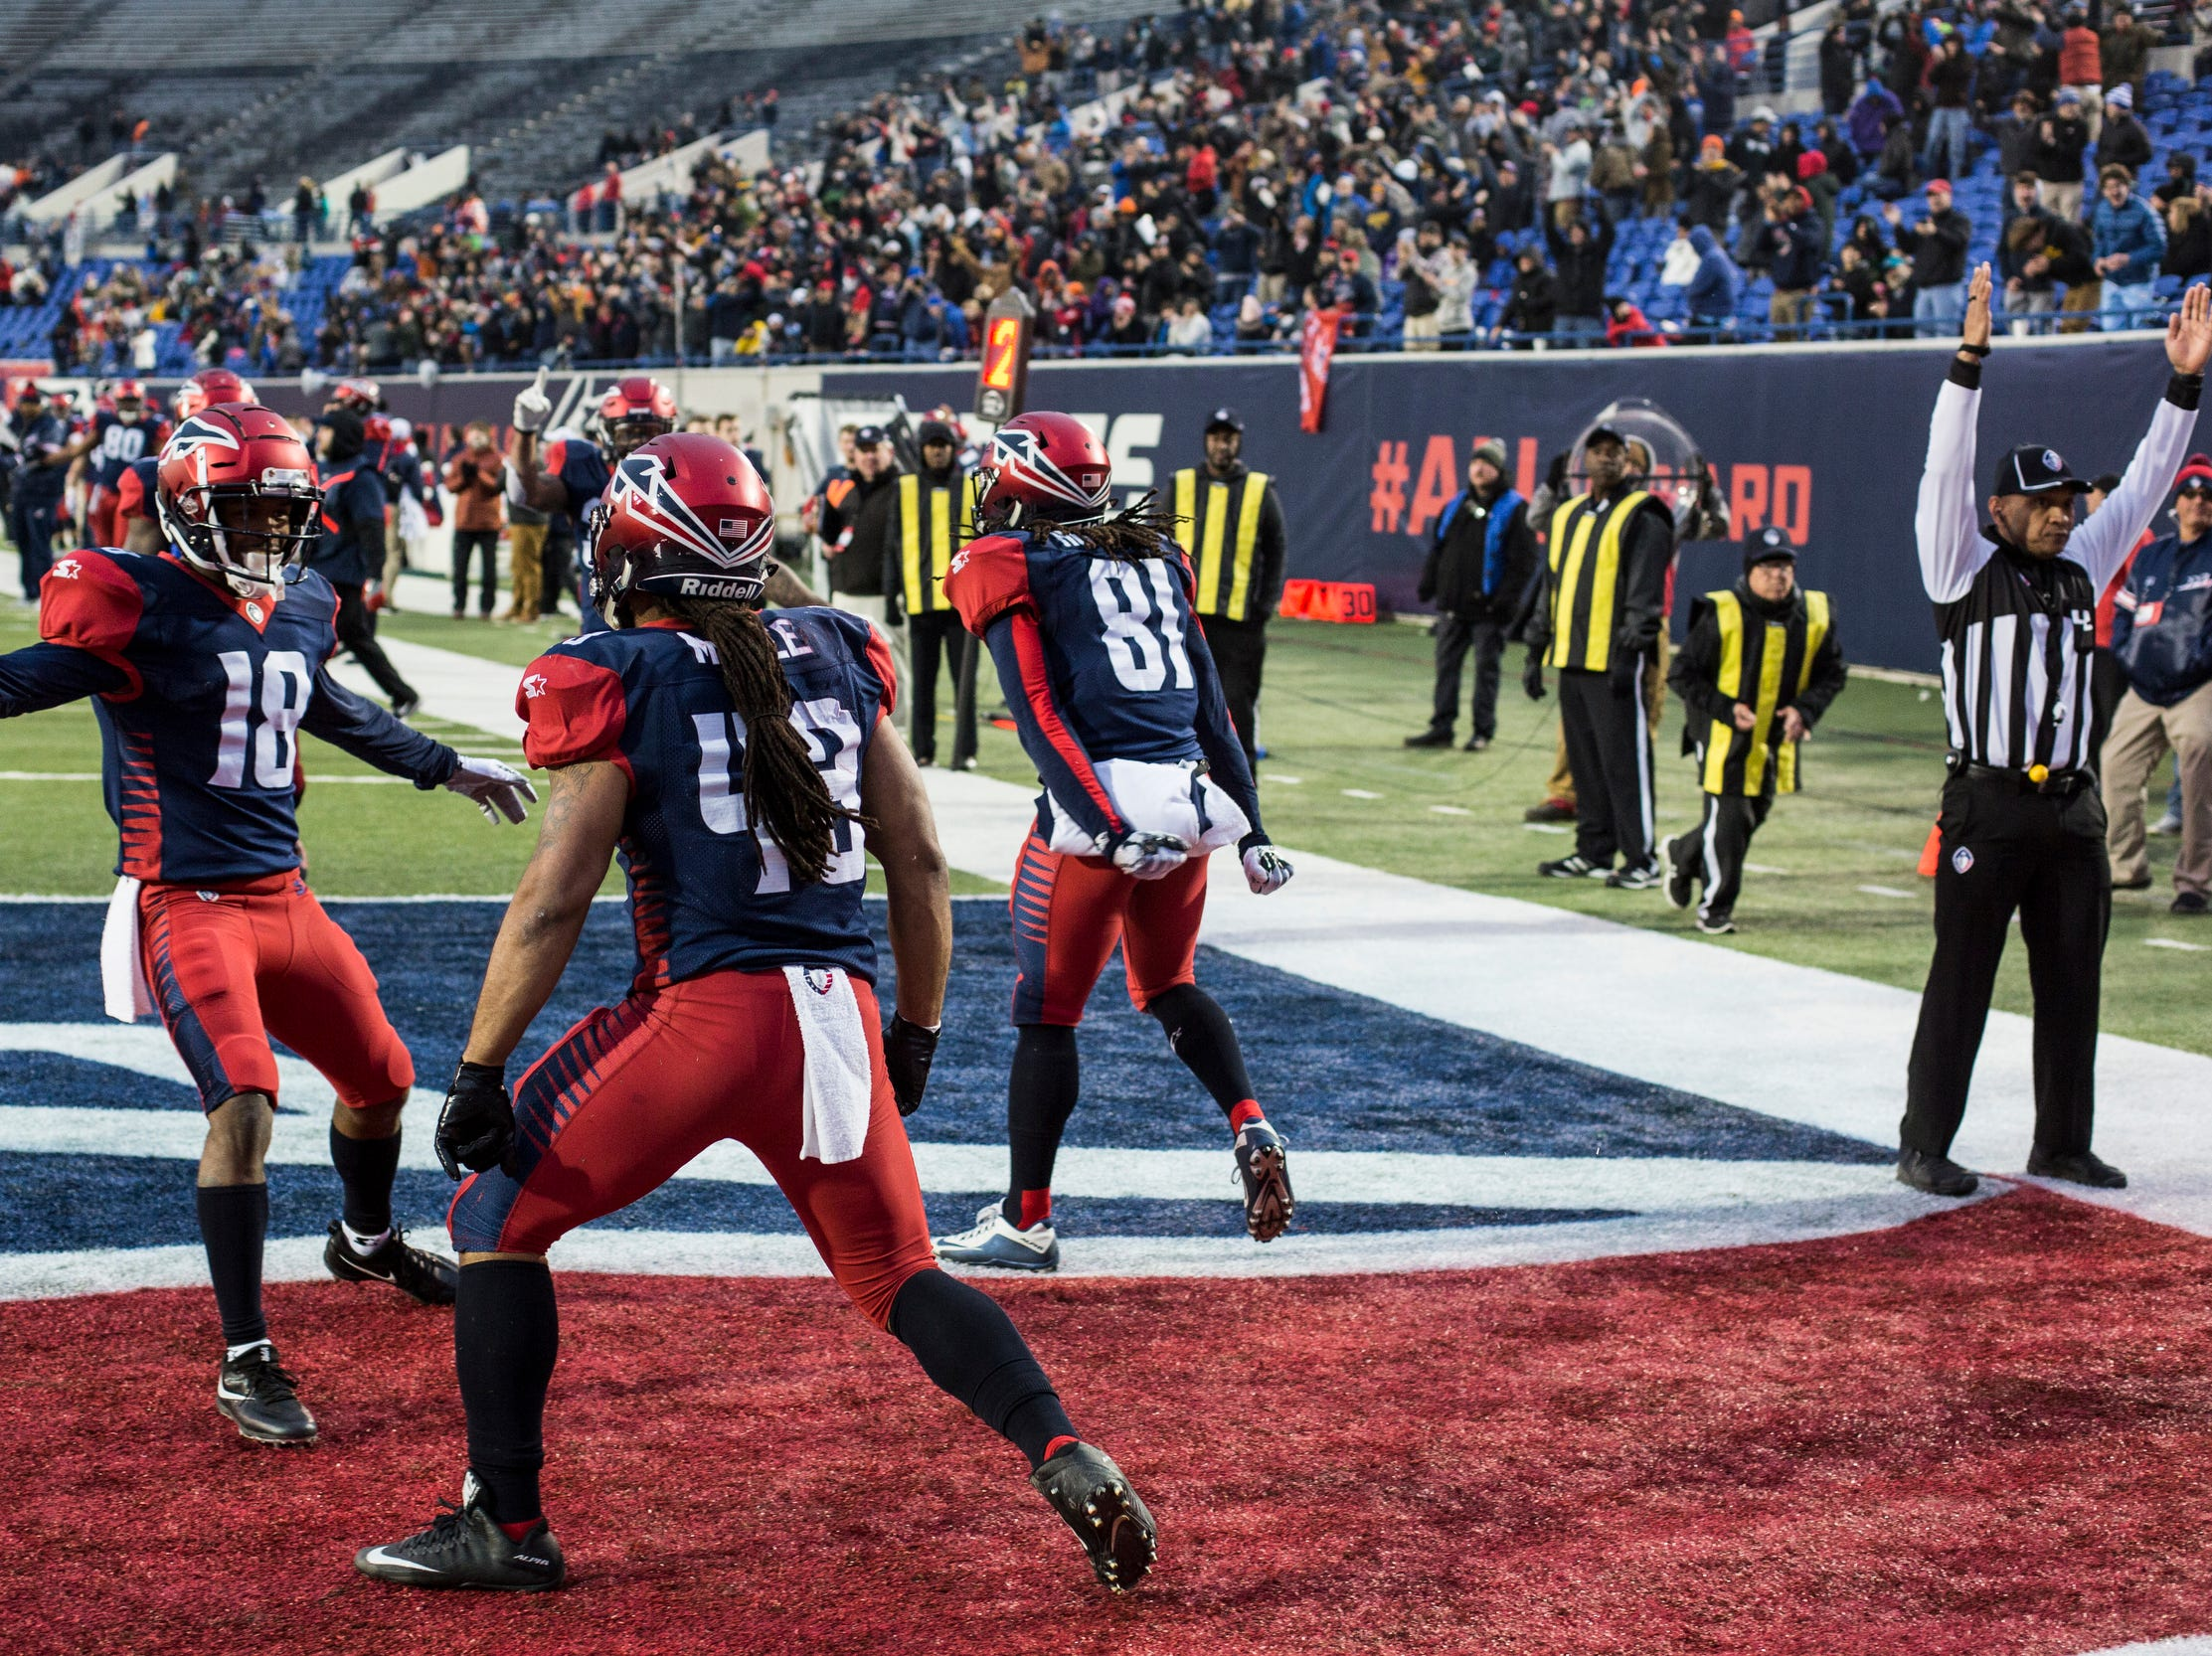 March 02, 2019 - The Memphis Express celebrate after a touchdown by Terrence Magee during Saturday's game against the San Diego Fleet.